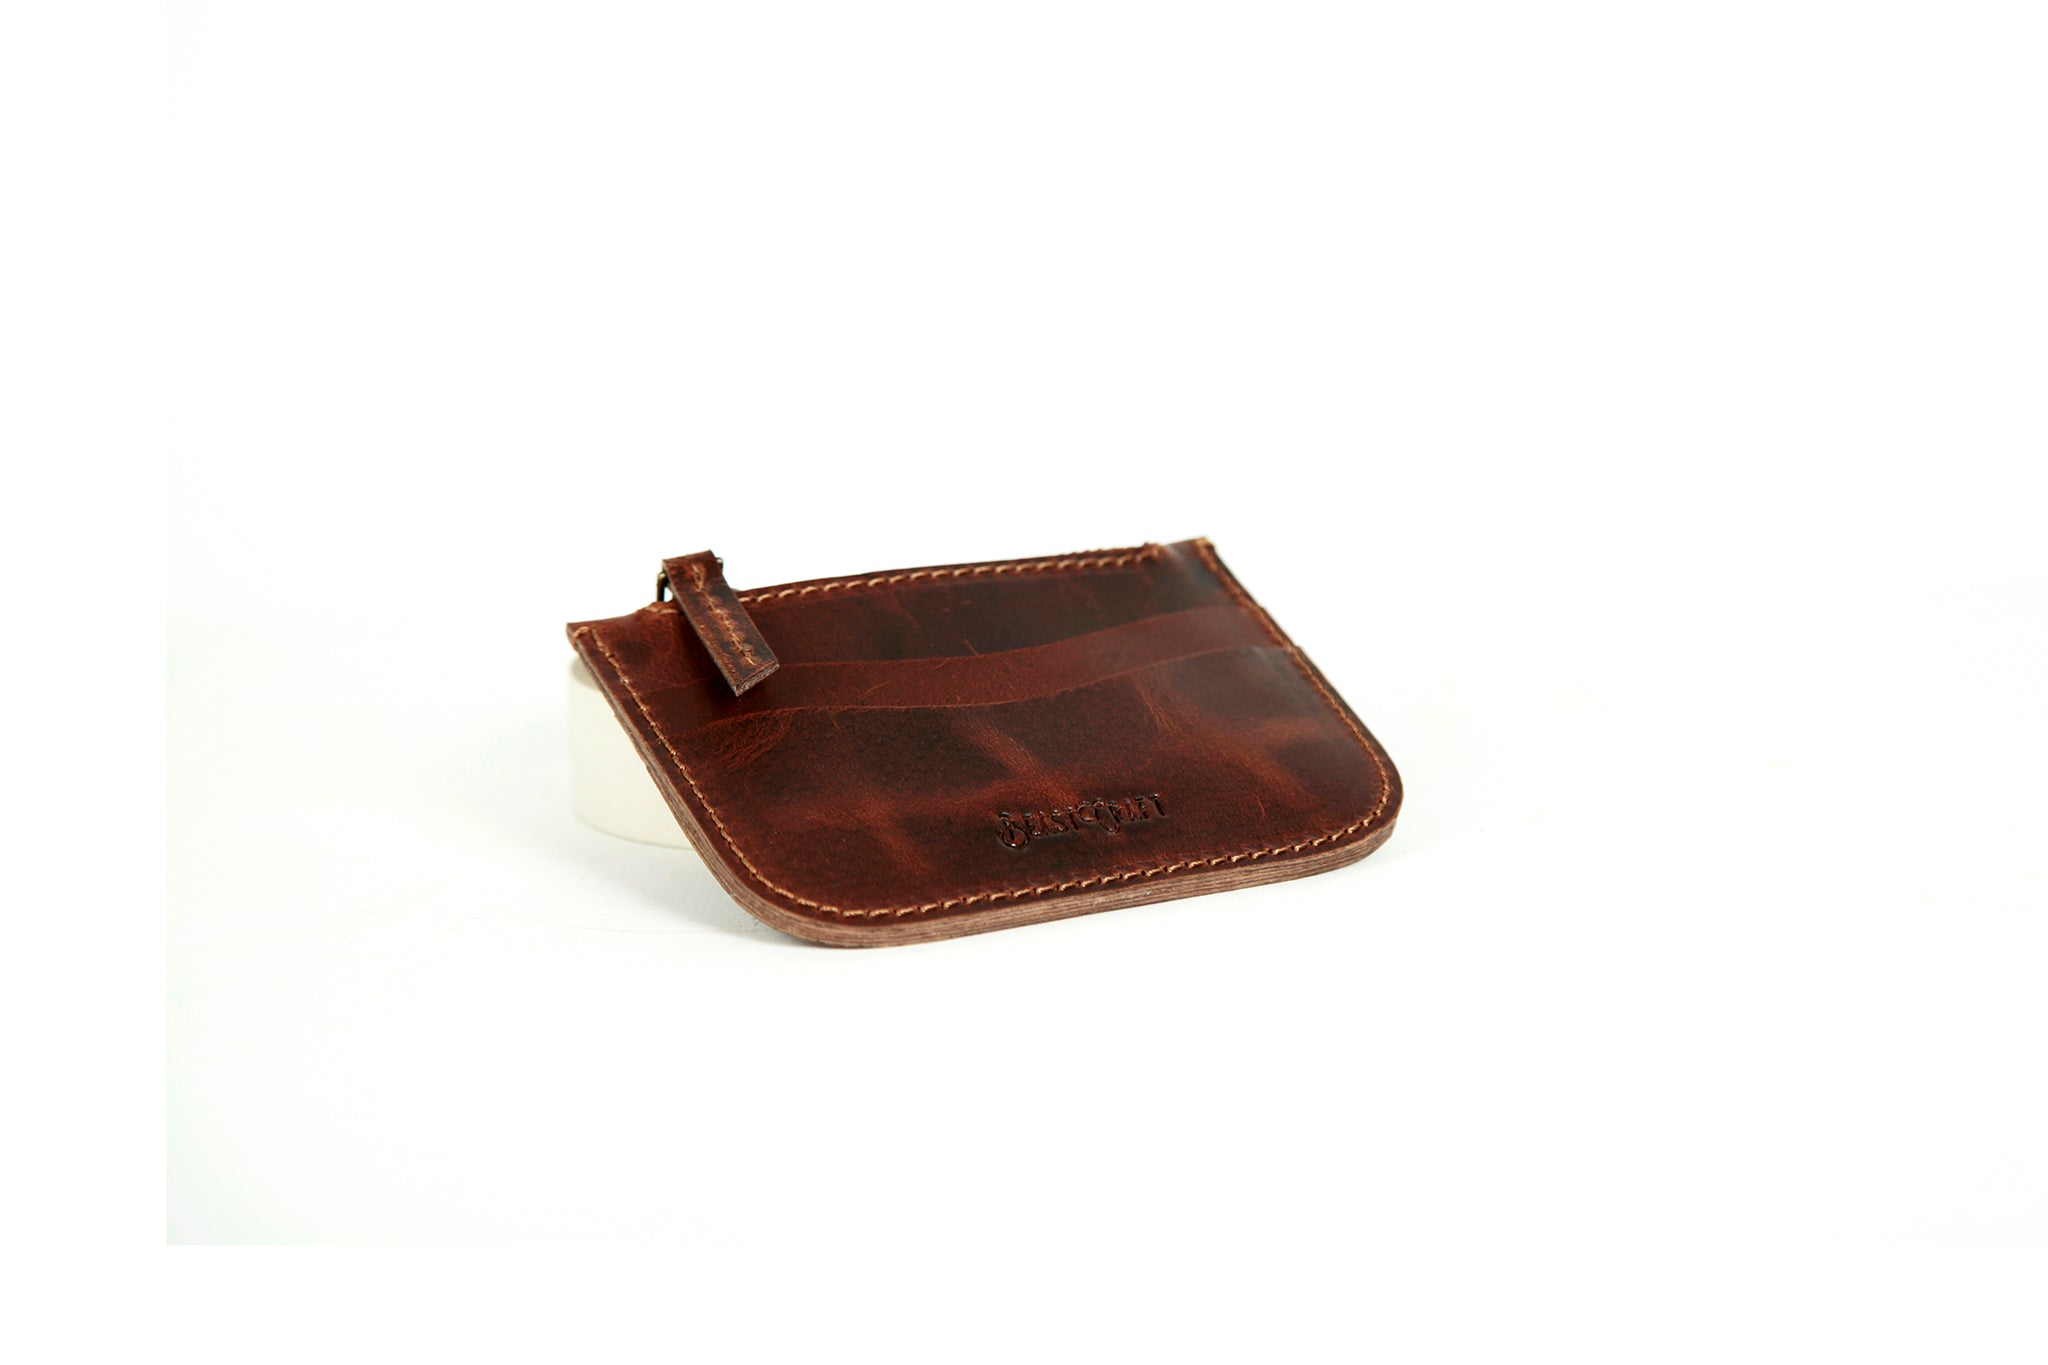 leather business card holder,leather wallet,wallet card holder,mens card wallet,slim credit card holder,credit card wallet,card holder United States